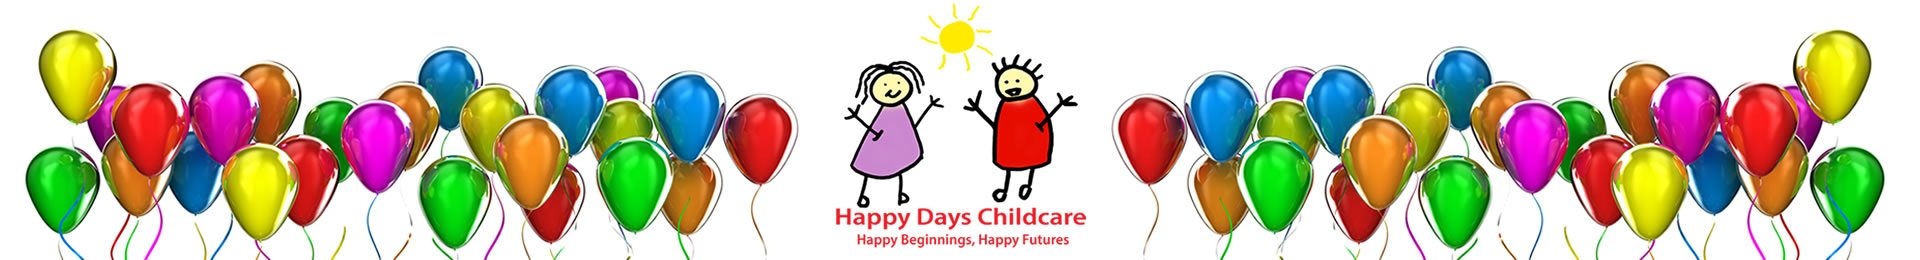 Happy Days Childcare Nursery Events